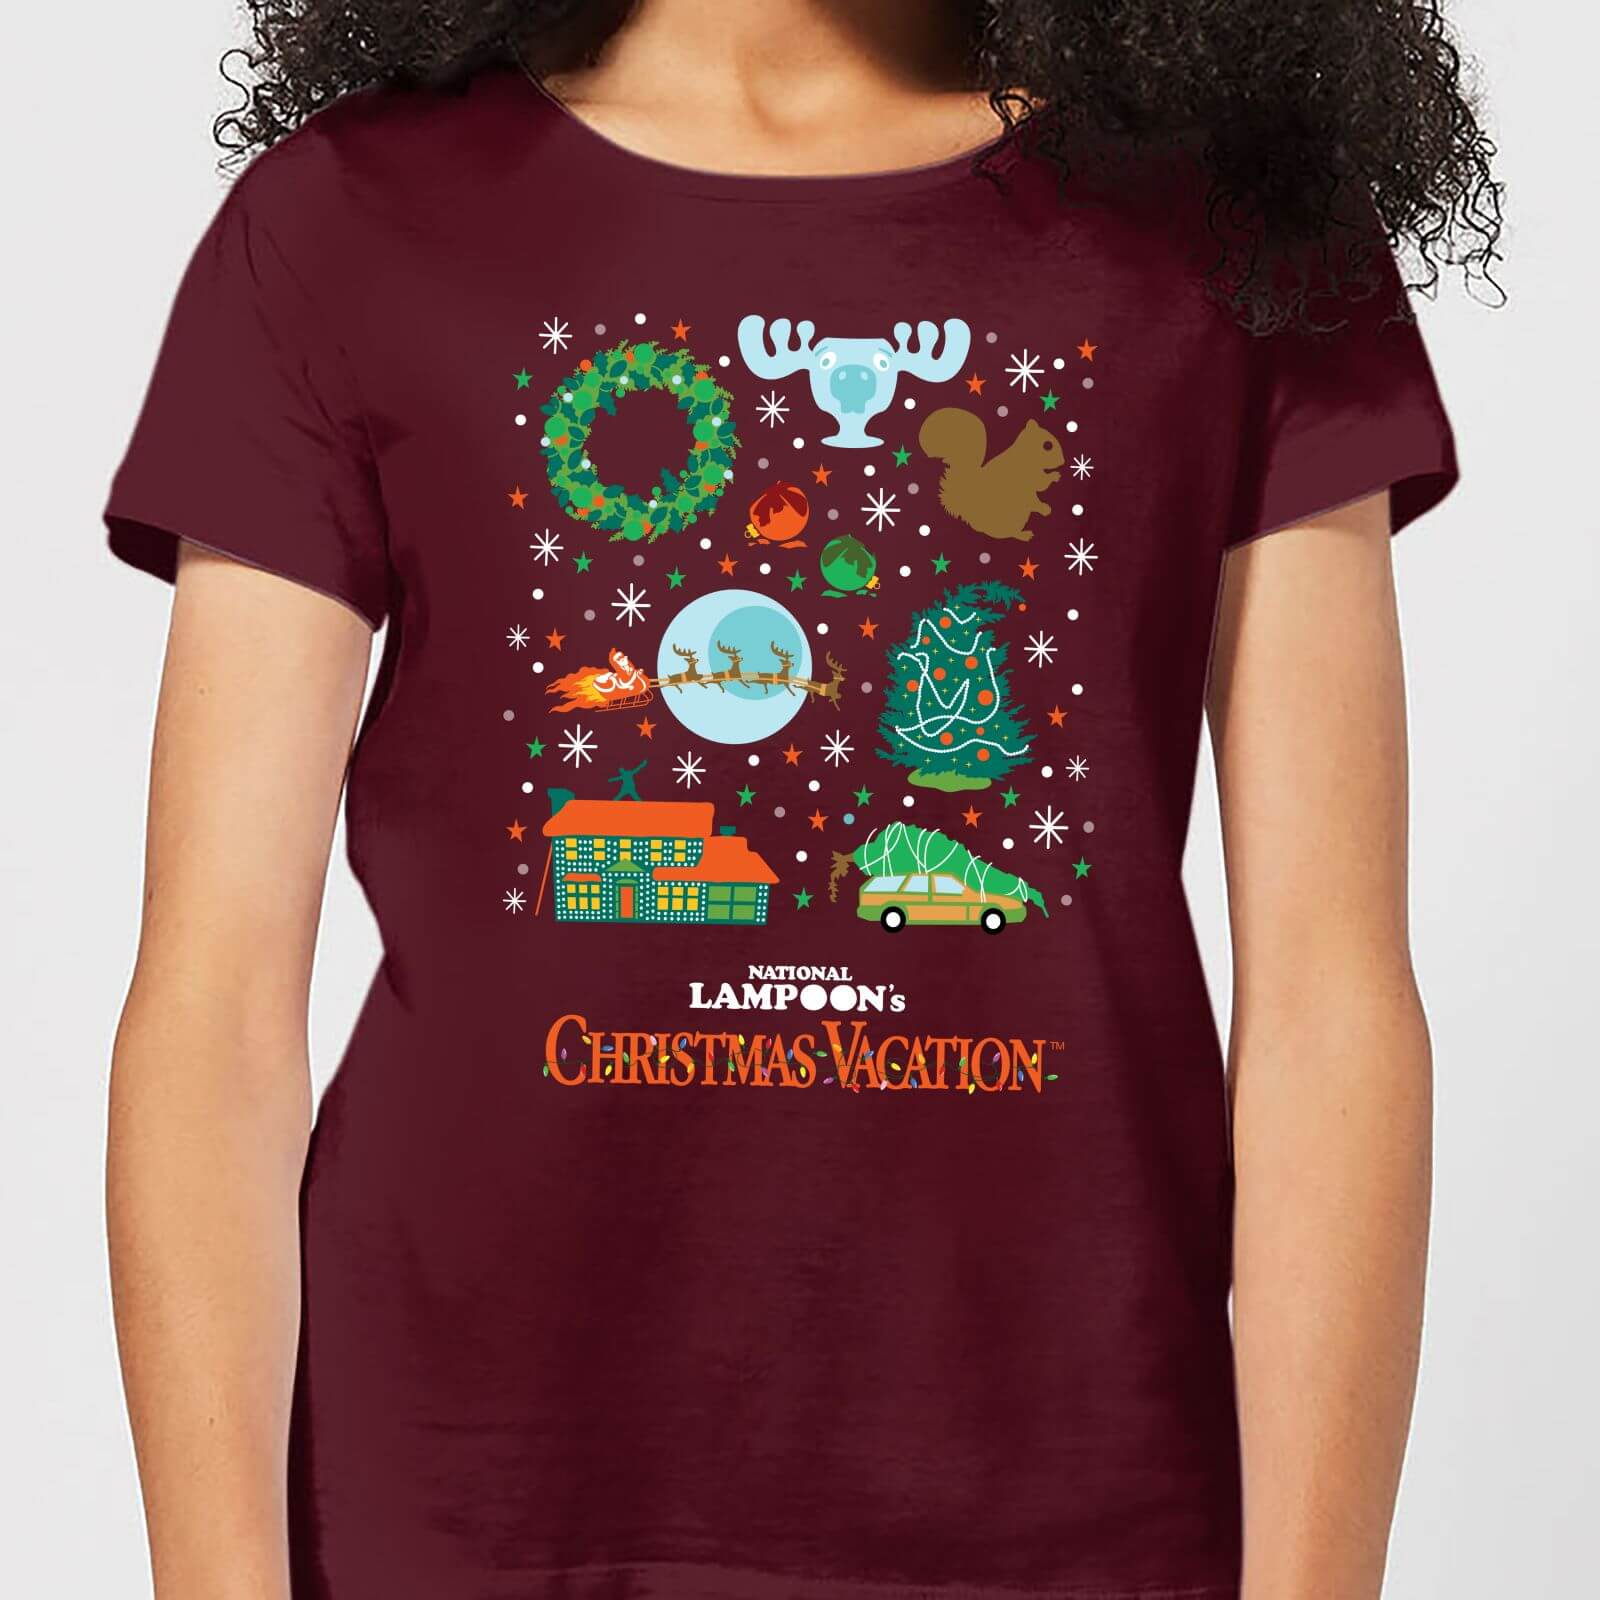 Griswold Christmas.National Lampoon Griswold Christmas Starter Pack Women S Christmas T Shirt Burgundy